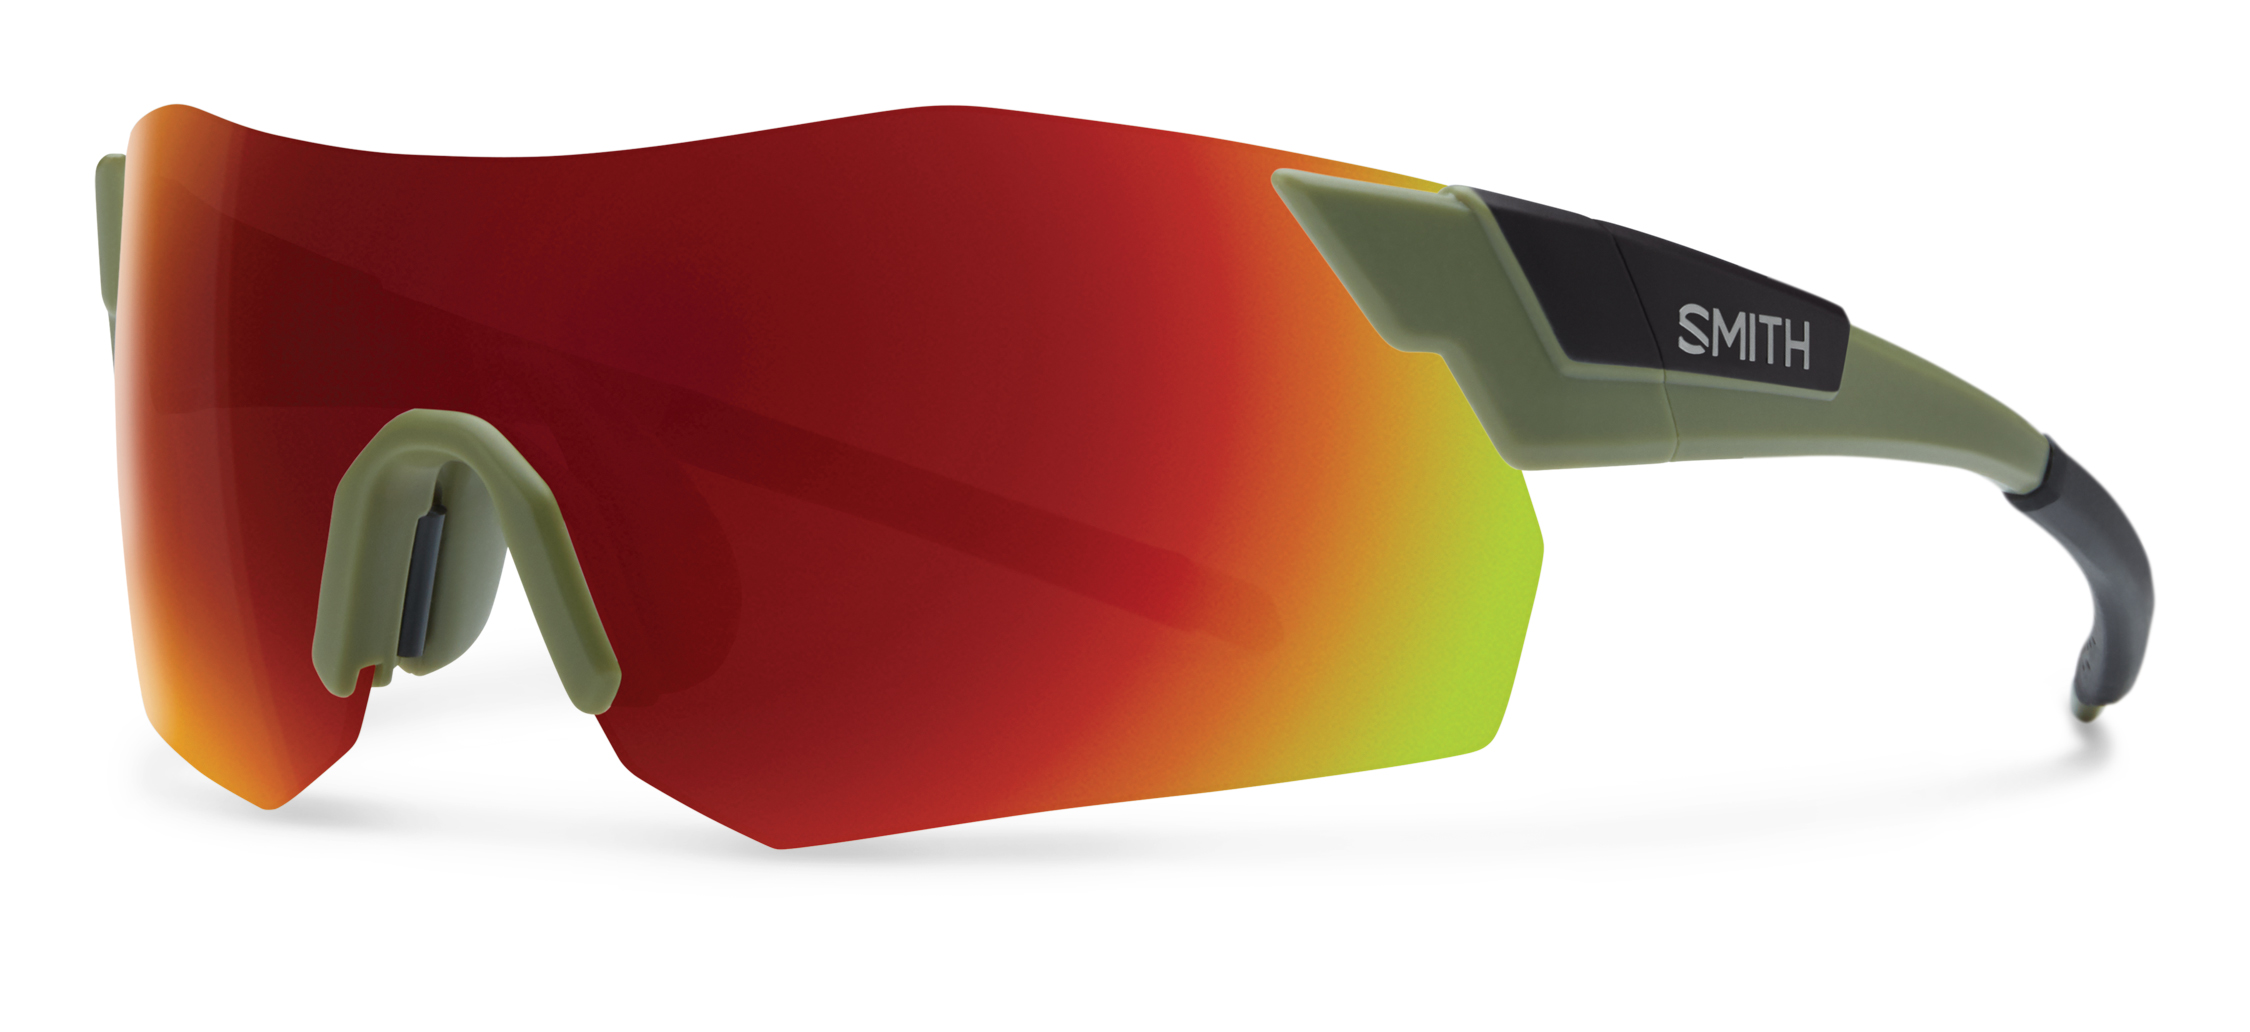 Top brands innovating to offer high-performance shades